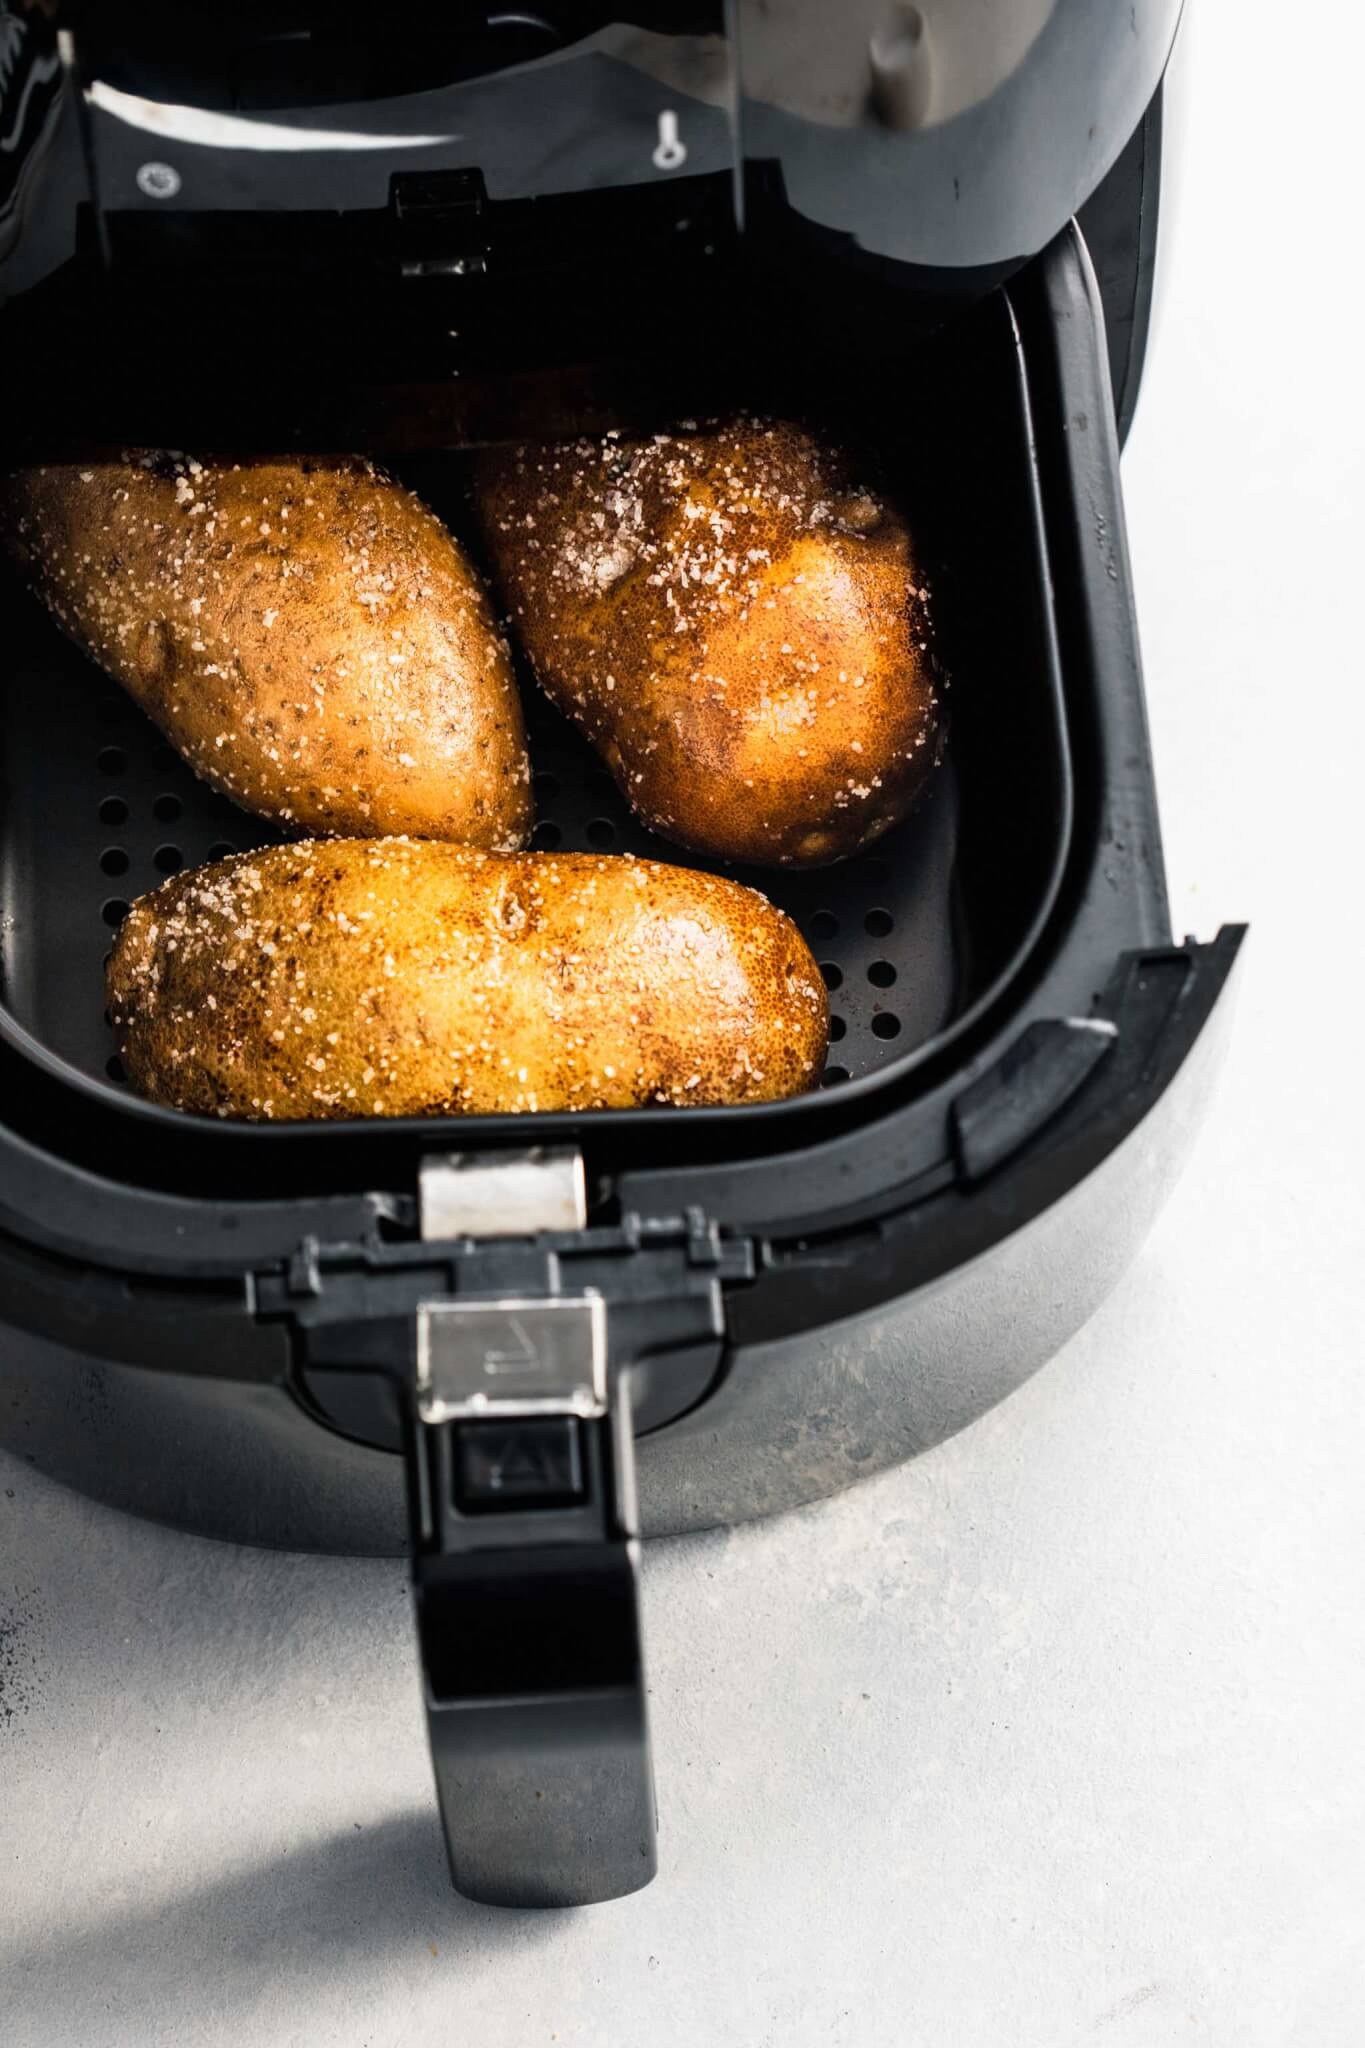 potatoes in air fryer basket